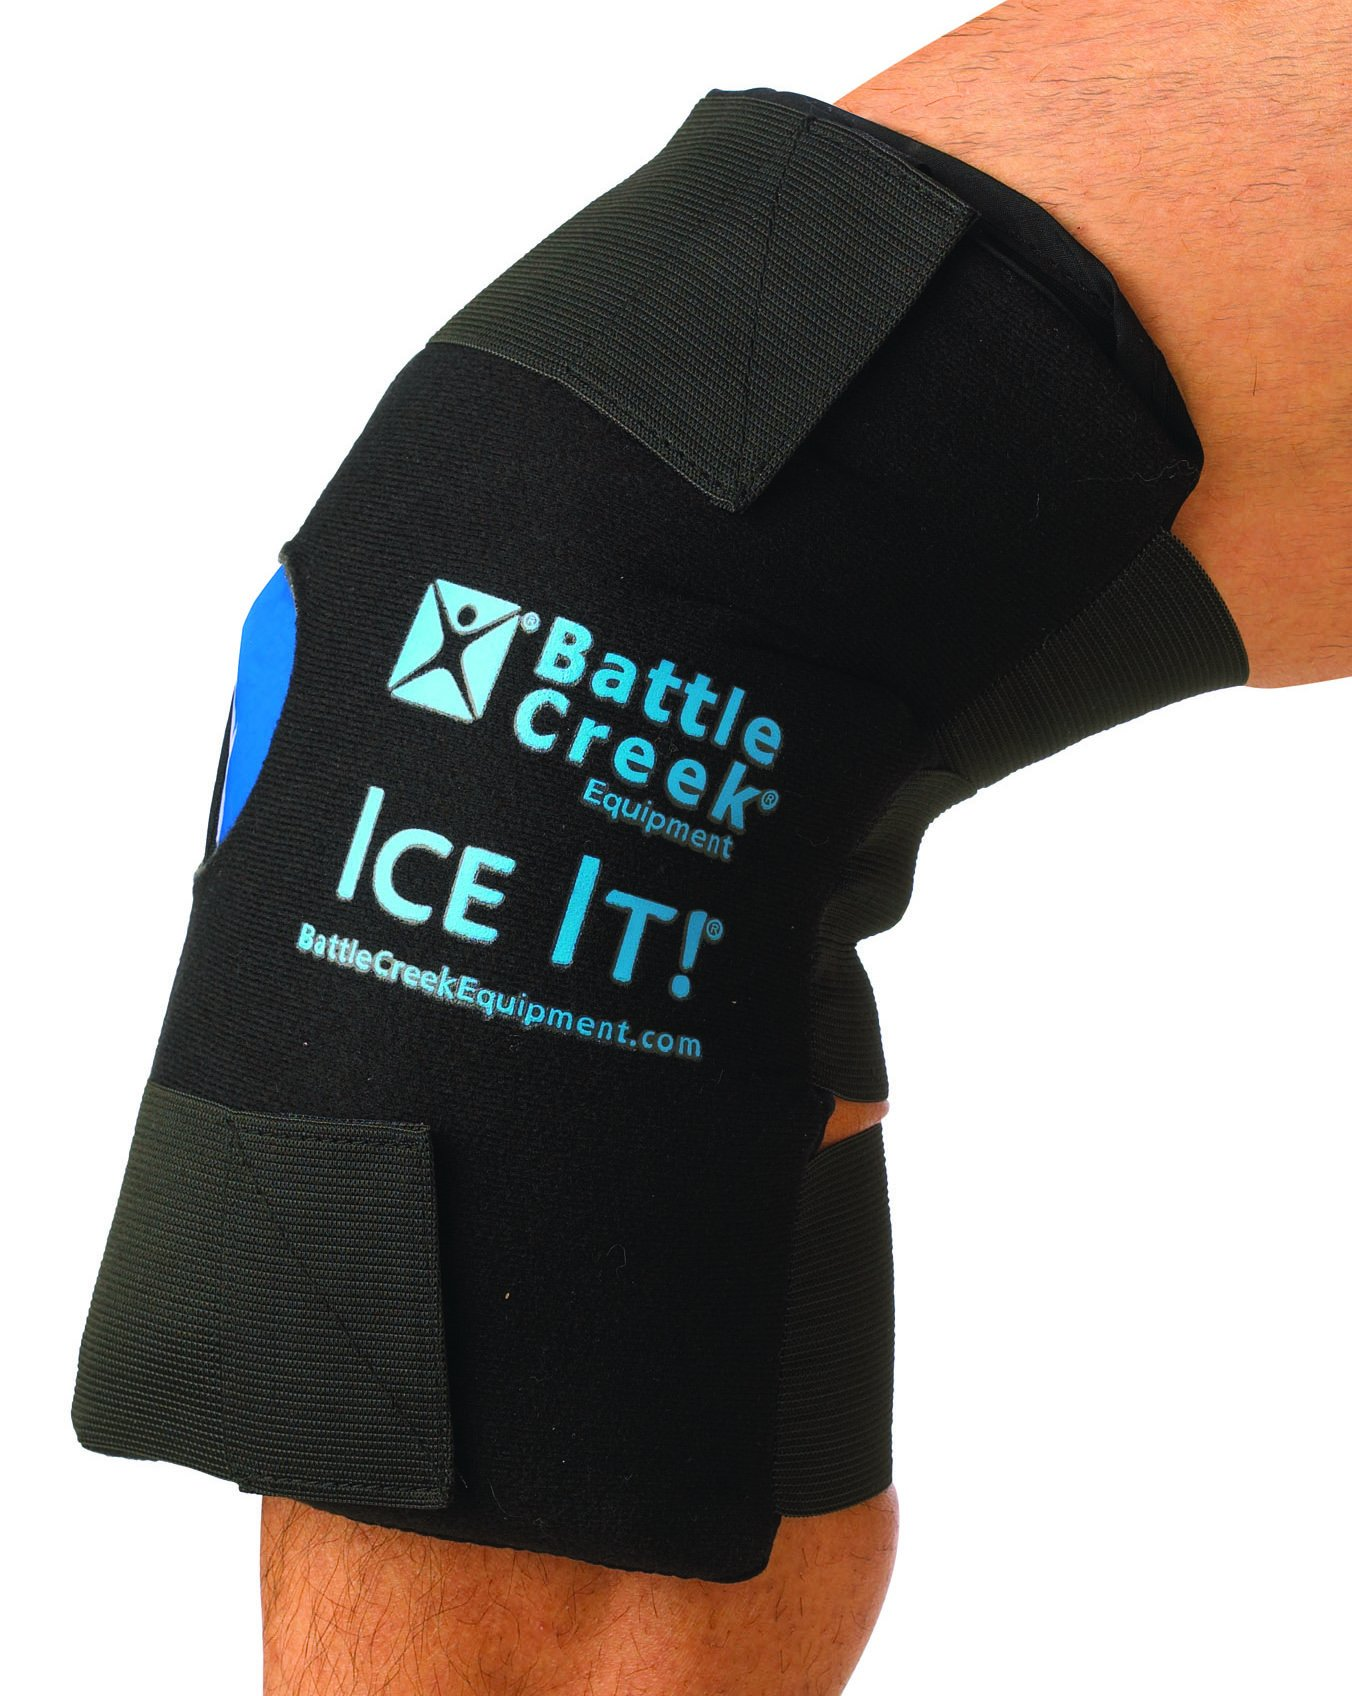 Hot and Cold Therapy Knee Wrap - With Bonus Gel Pack by Ice It!